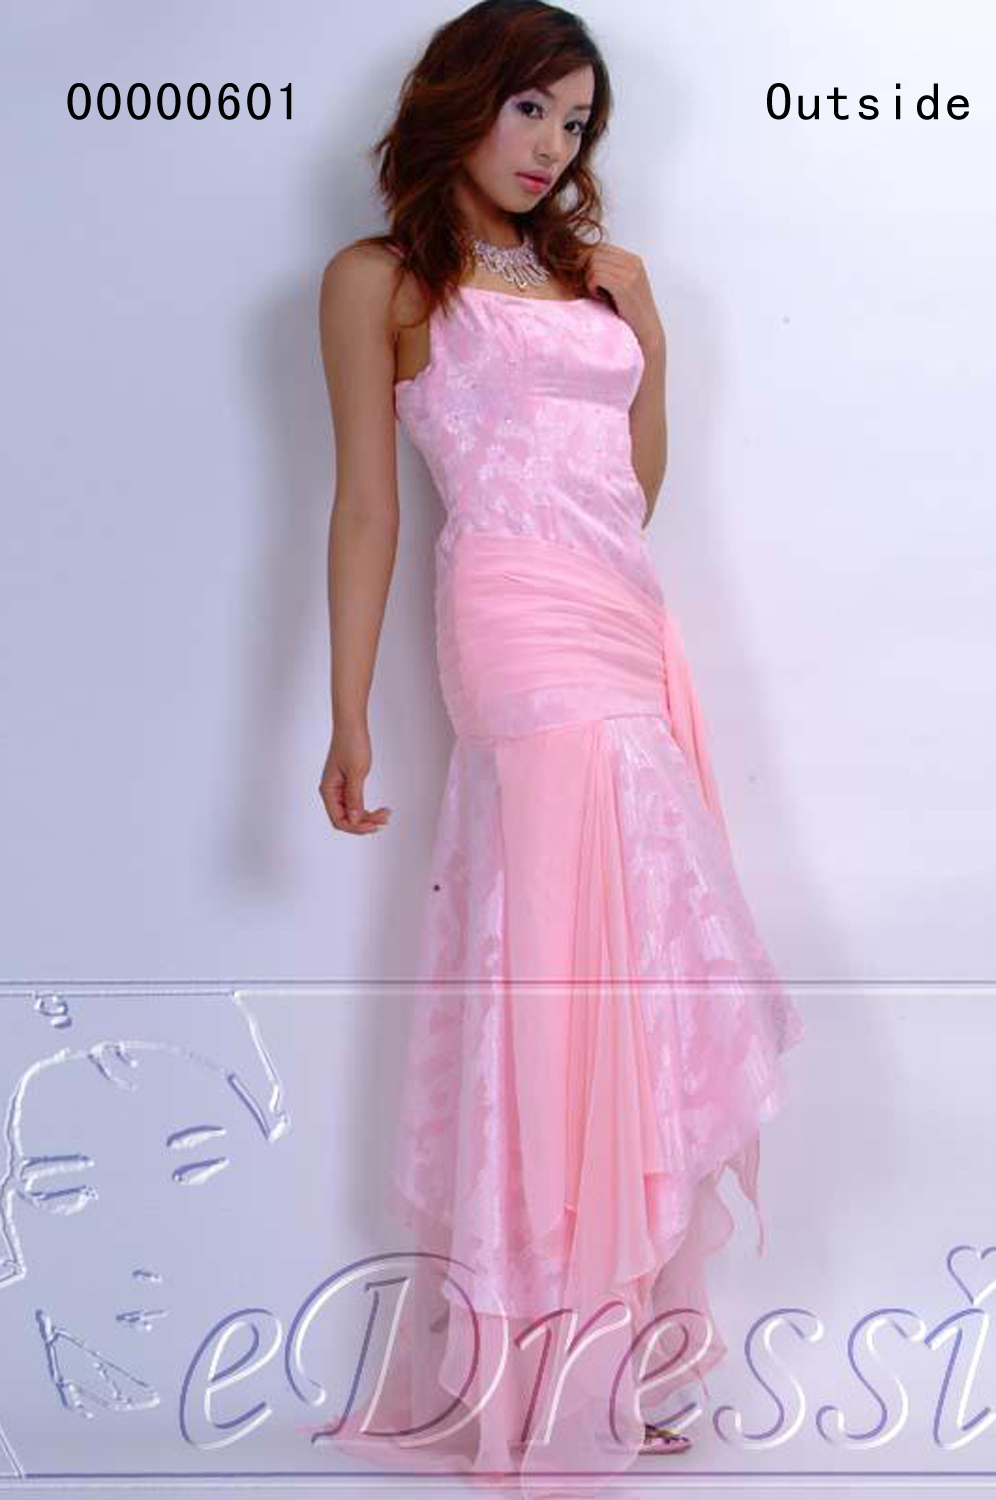 On sale evening dress (00000601)